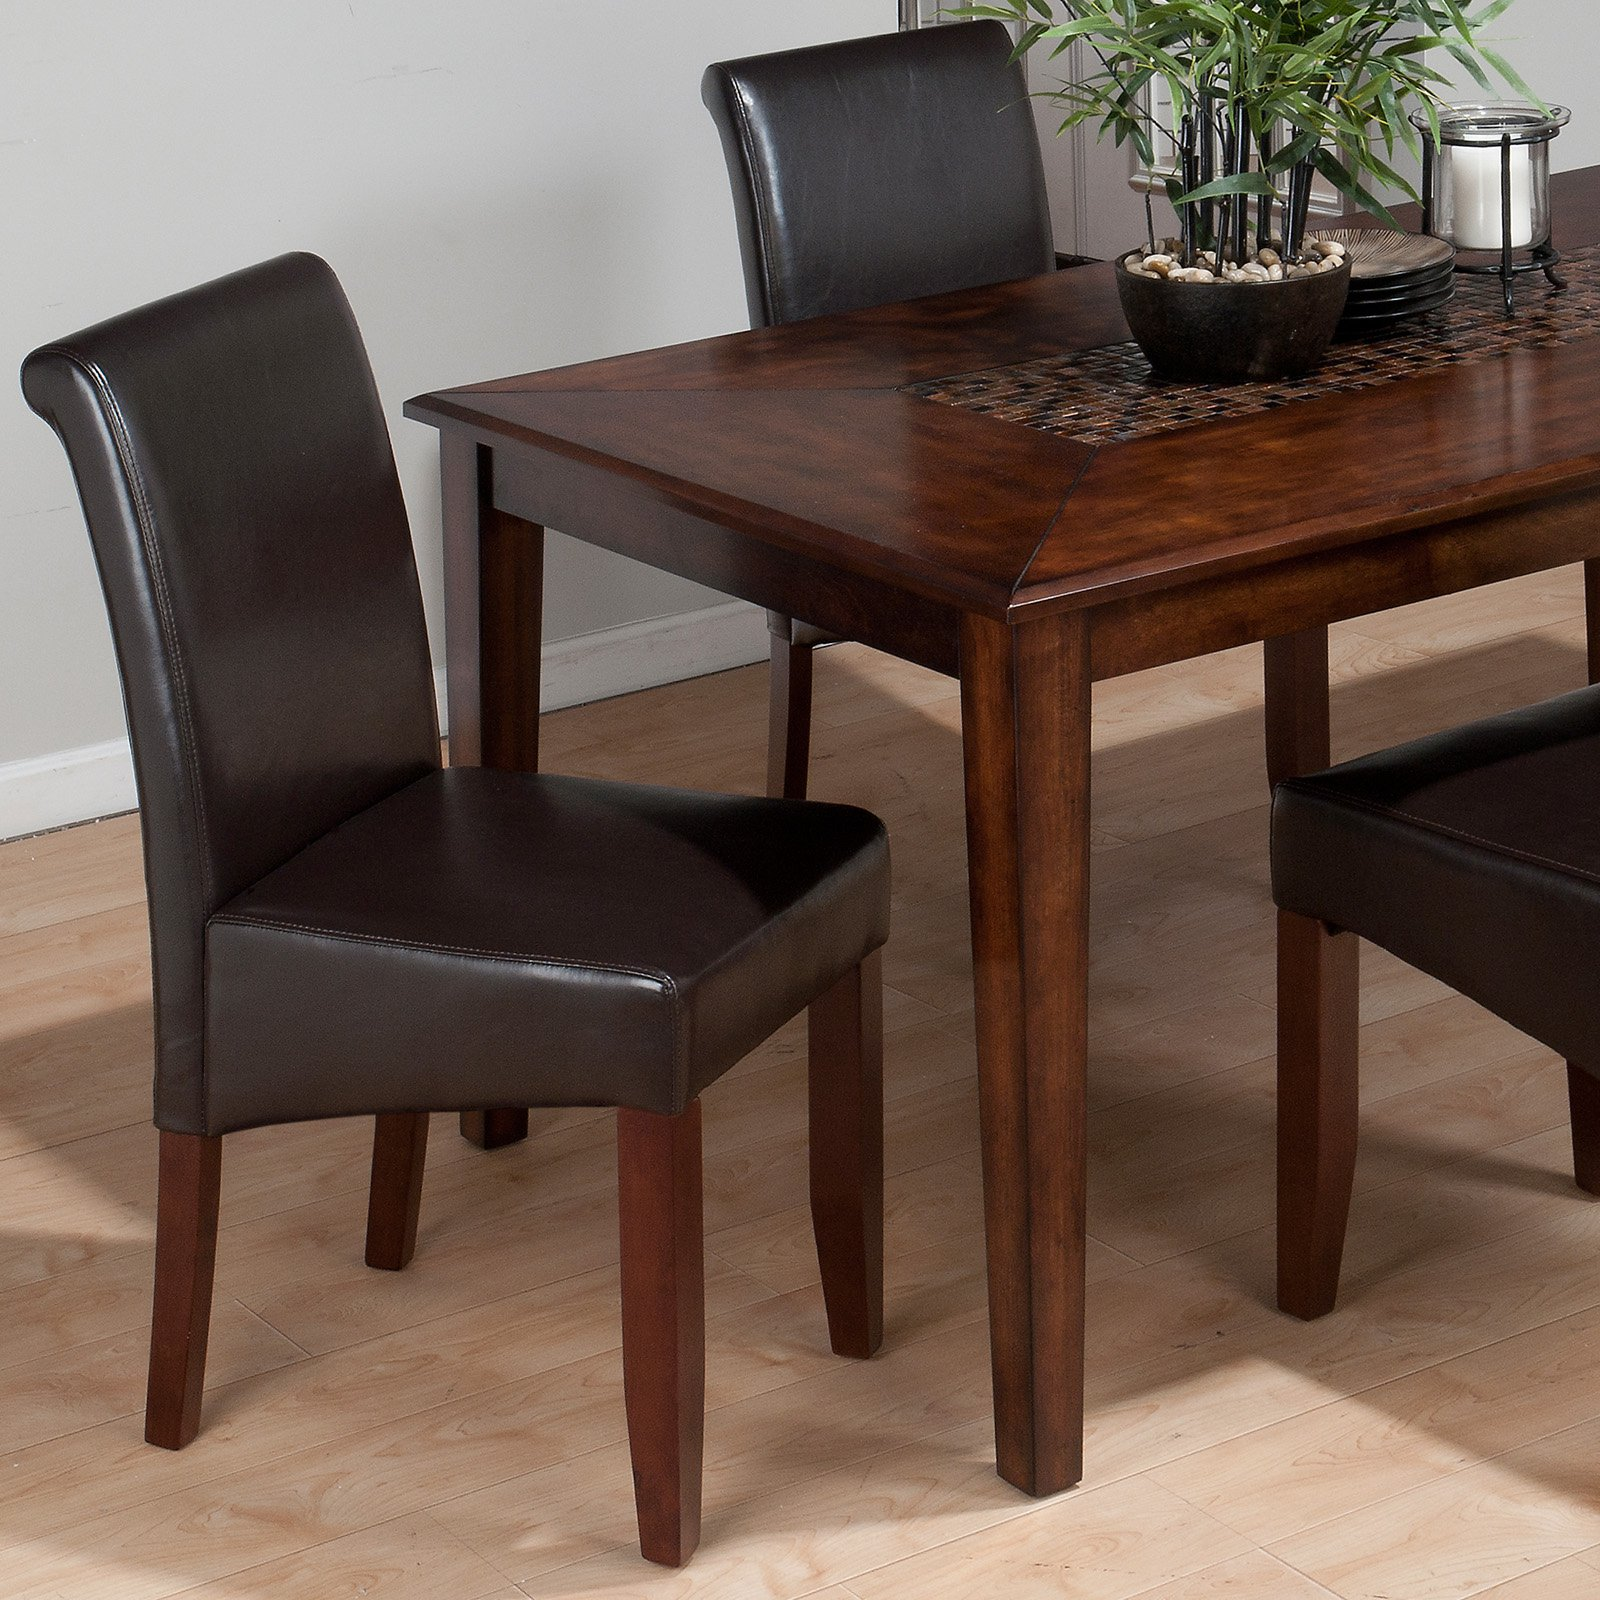 Jofran Baroque Parson Dining Chairs - Set of 2